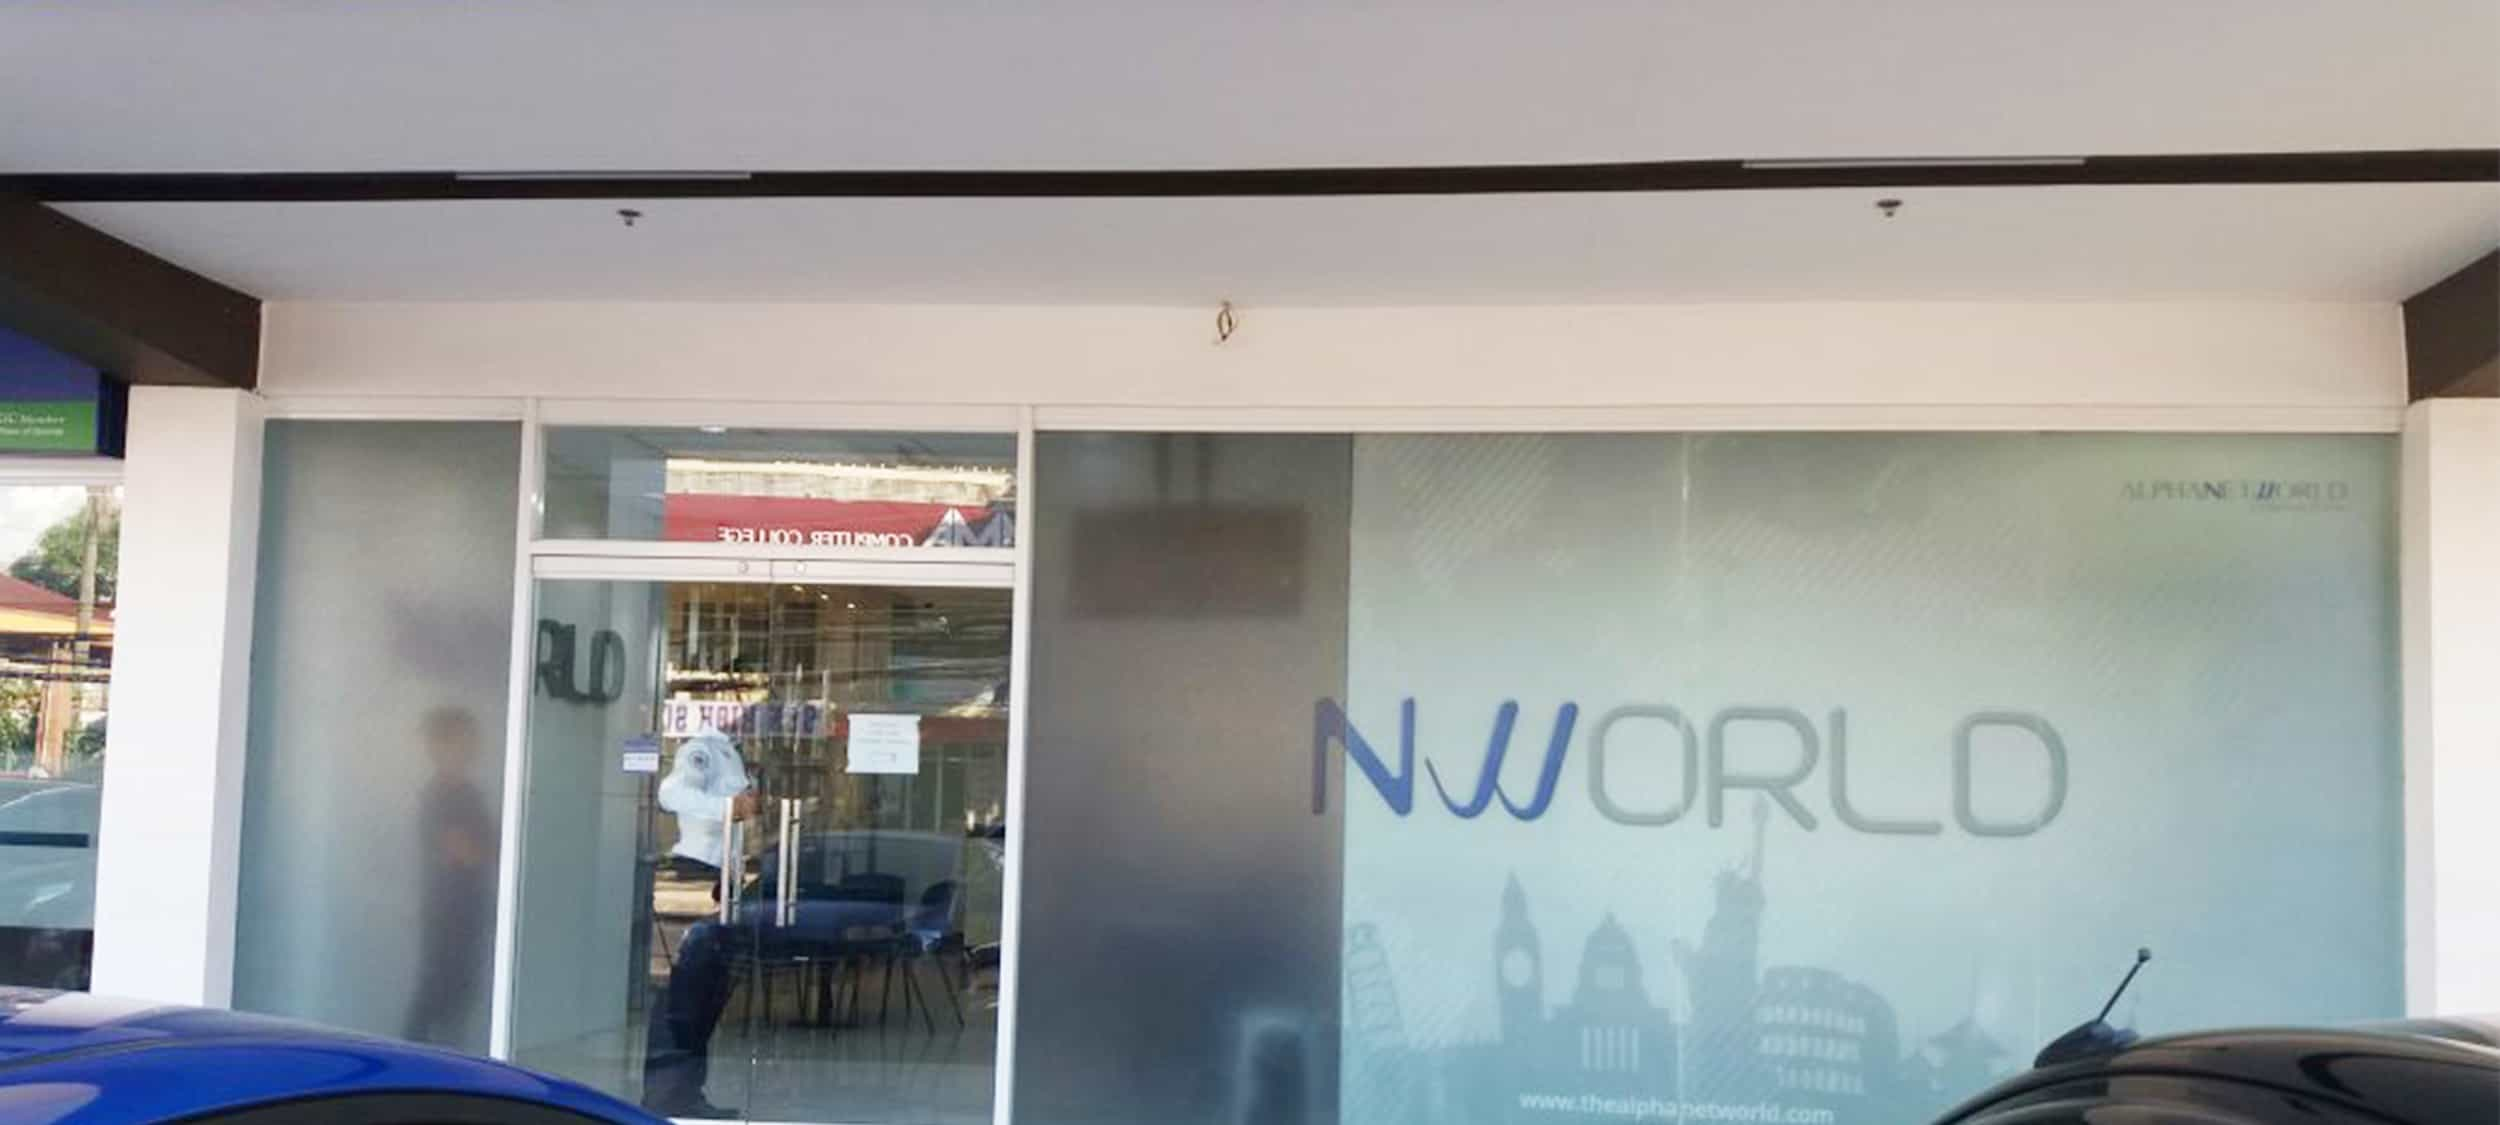 NWORLD Naga Branch